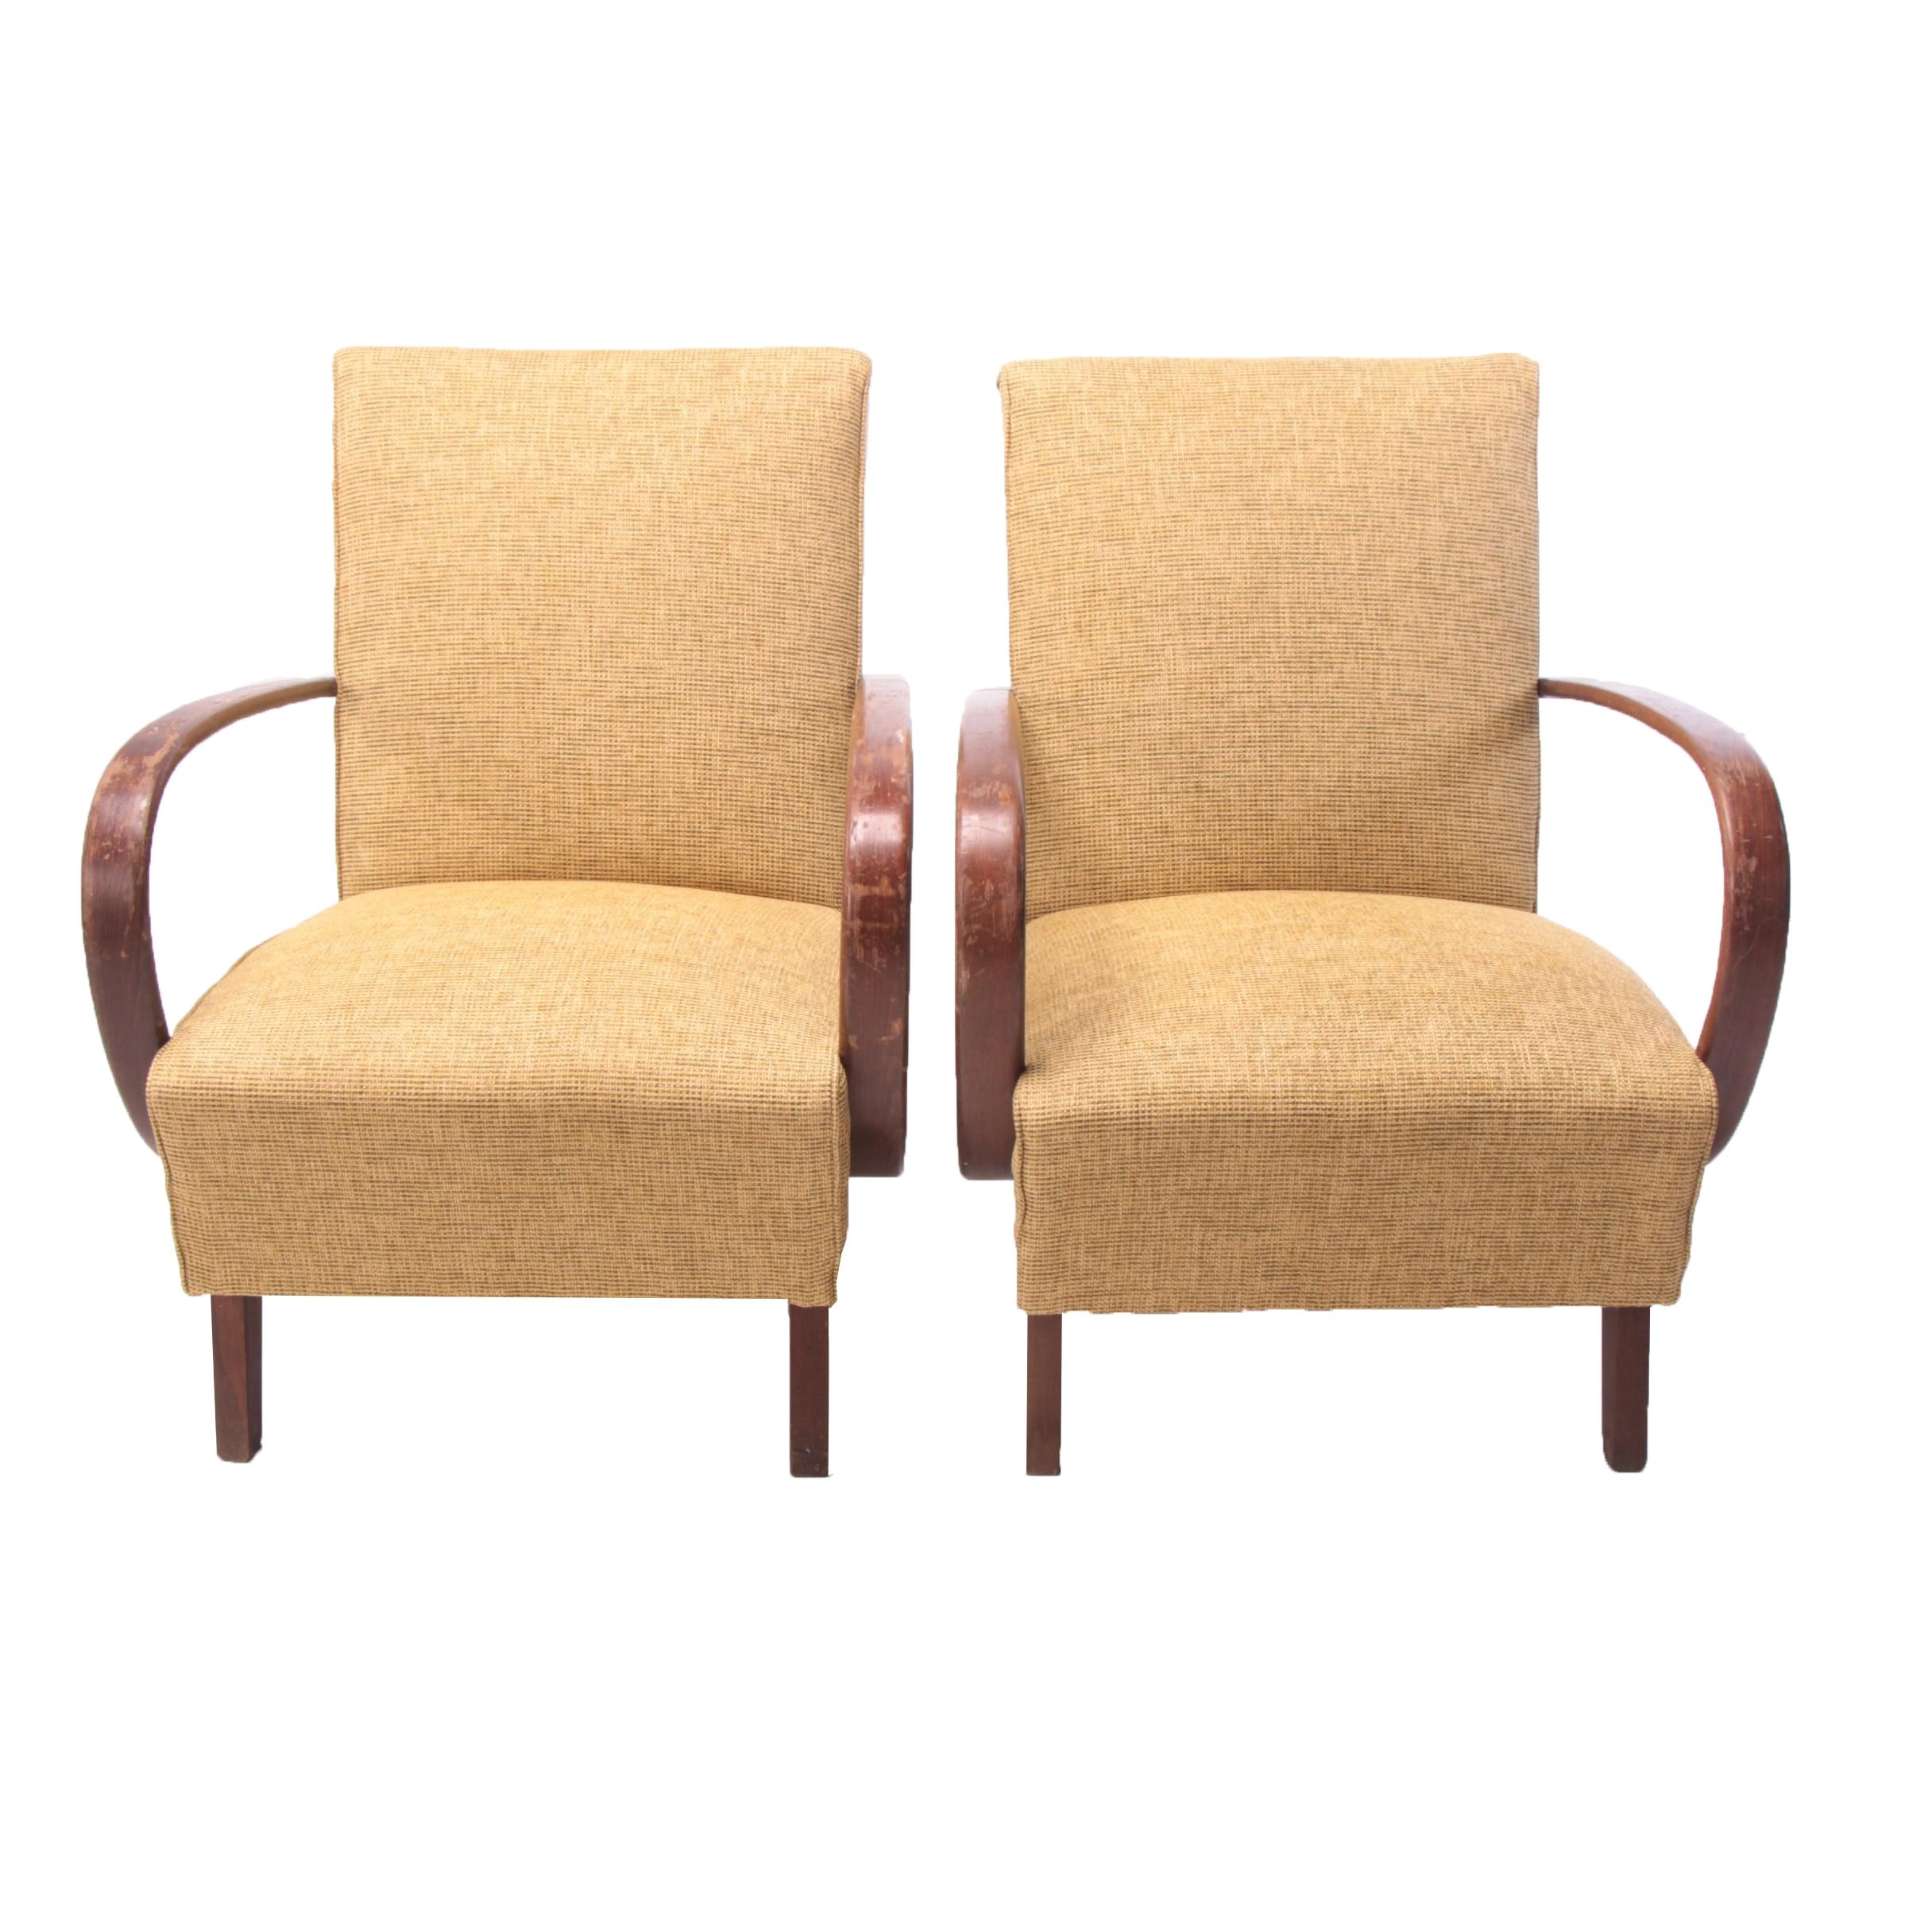 Pair of Czech Modern Upholstered Bentwood Armchairs, 20th Century